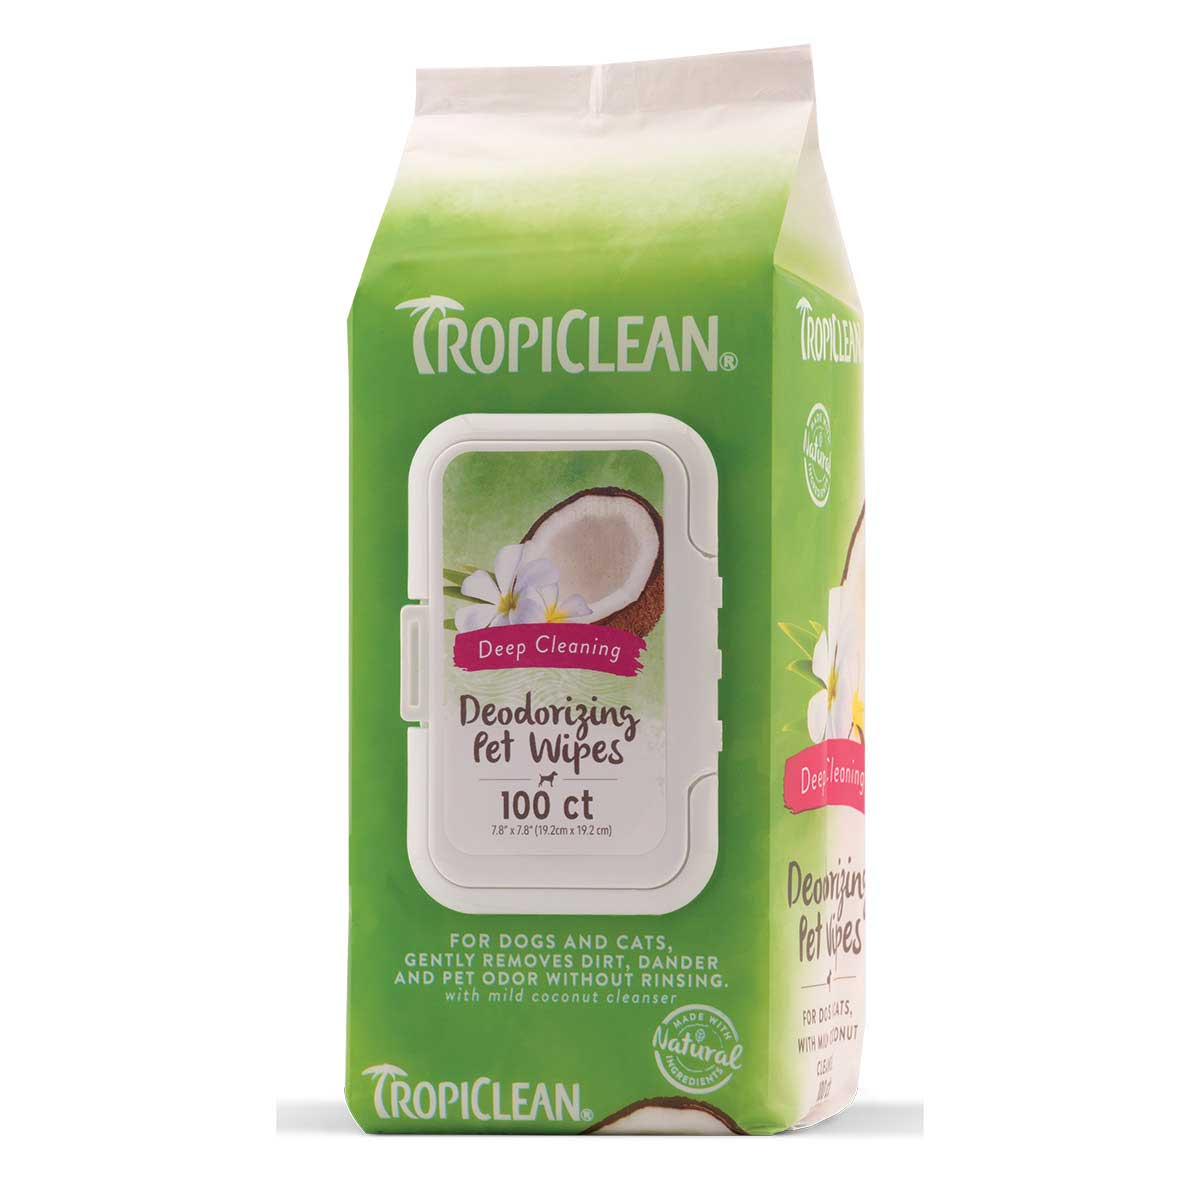 Tropiclean Deep-Cleaning Deodorizing Pet Wipes 100 Count